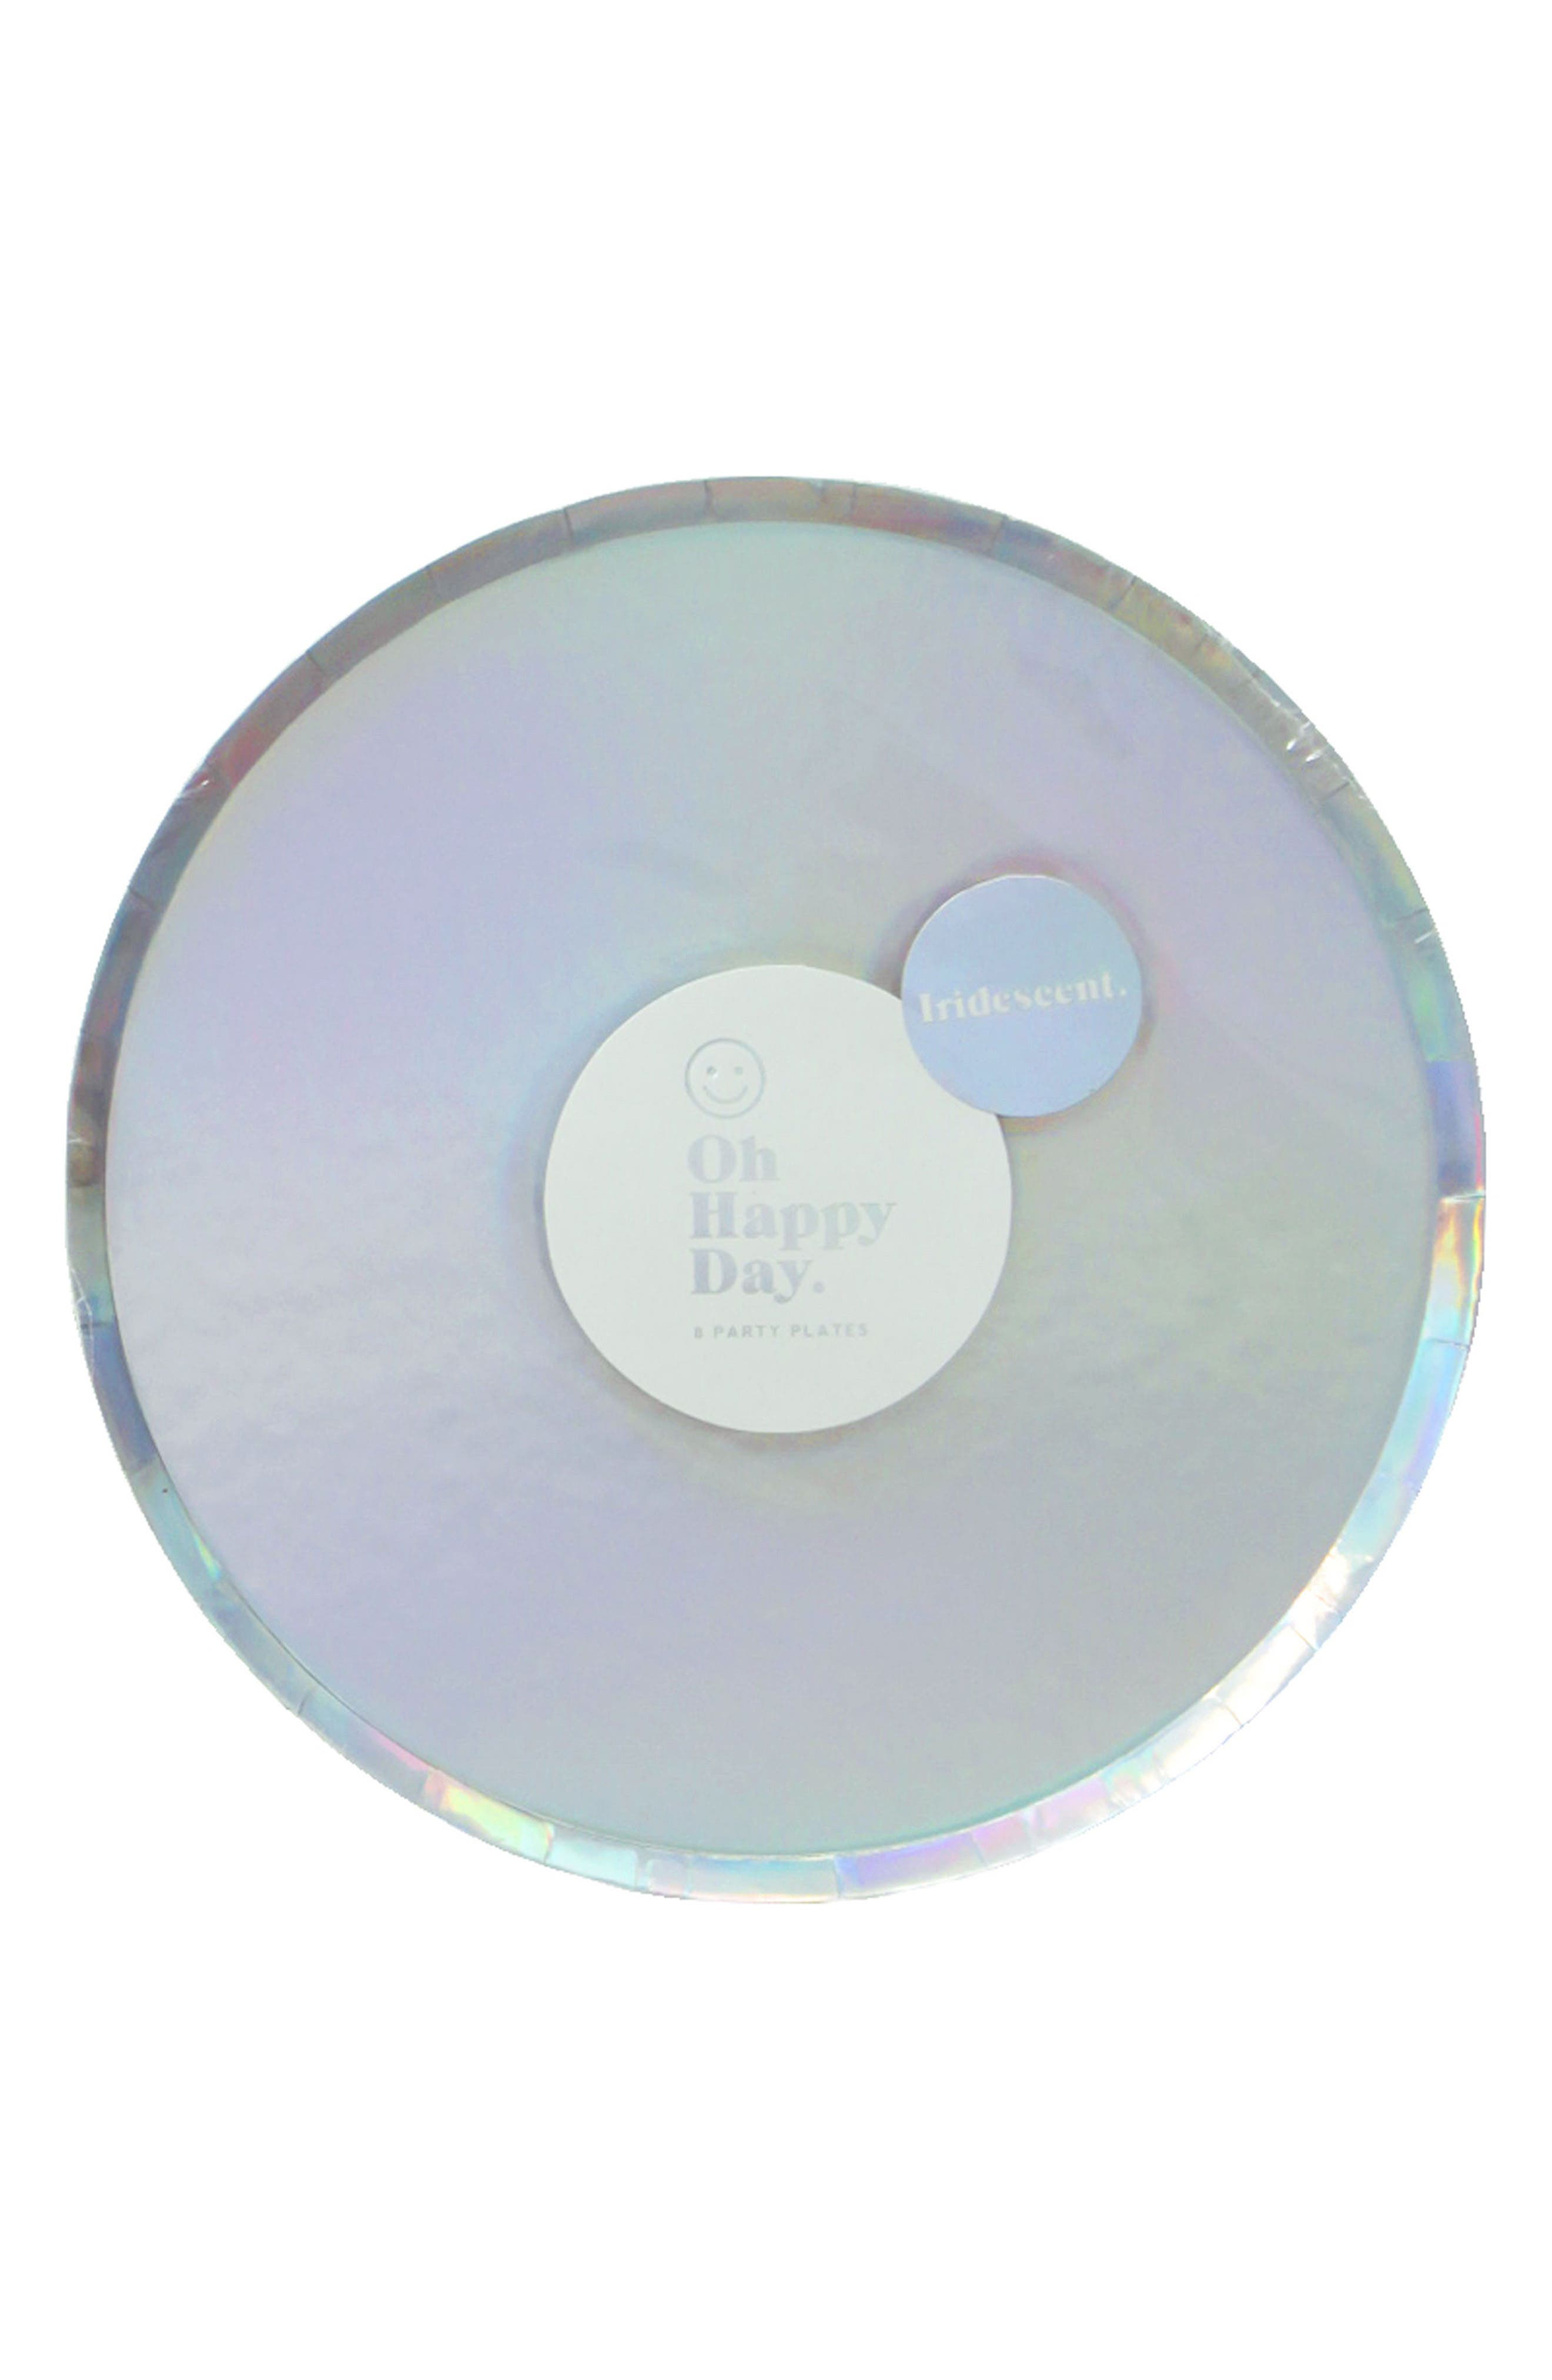 Oh Happy Day Set of 8 Iridescent 7-Inch Paper Party Plates